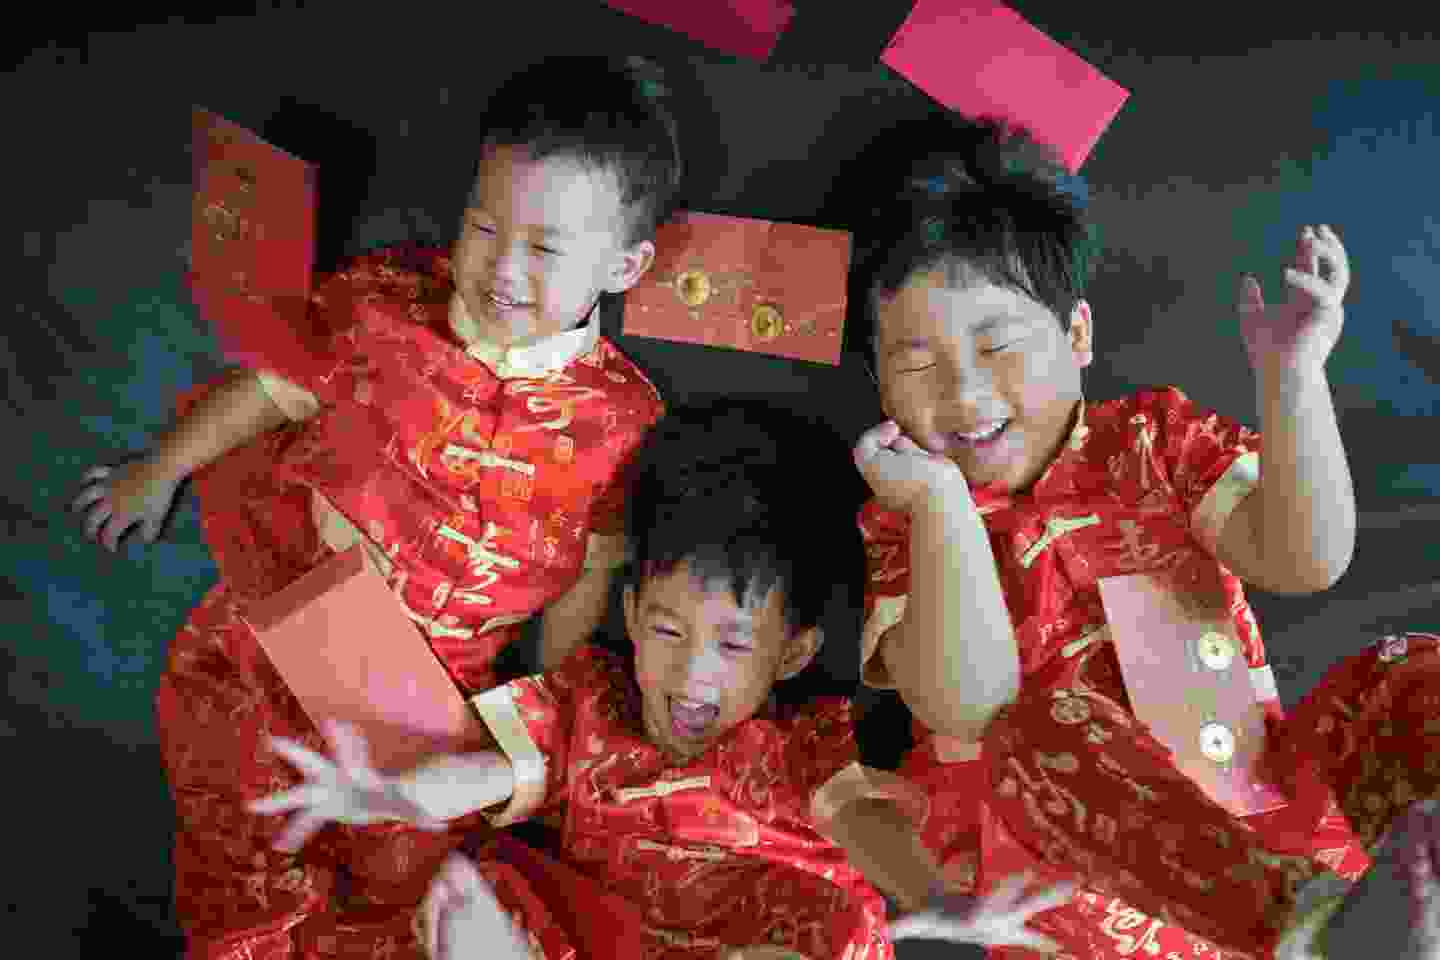 Children receiving gifts on New Year (shutterstock)